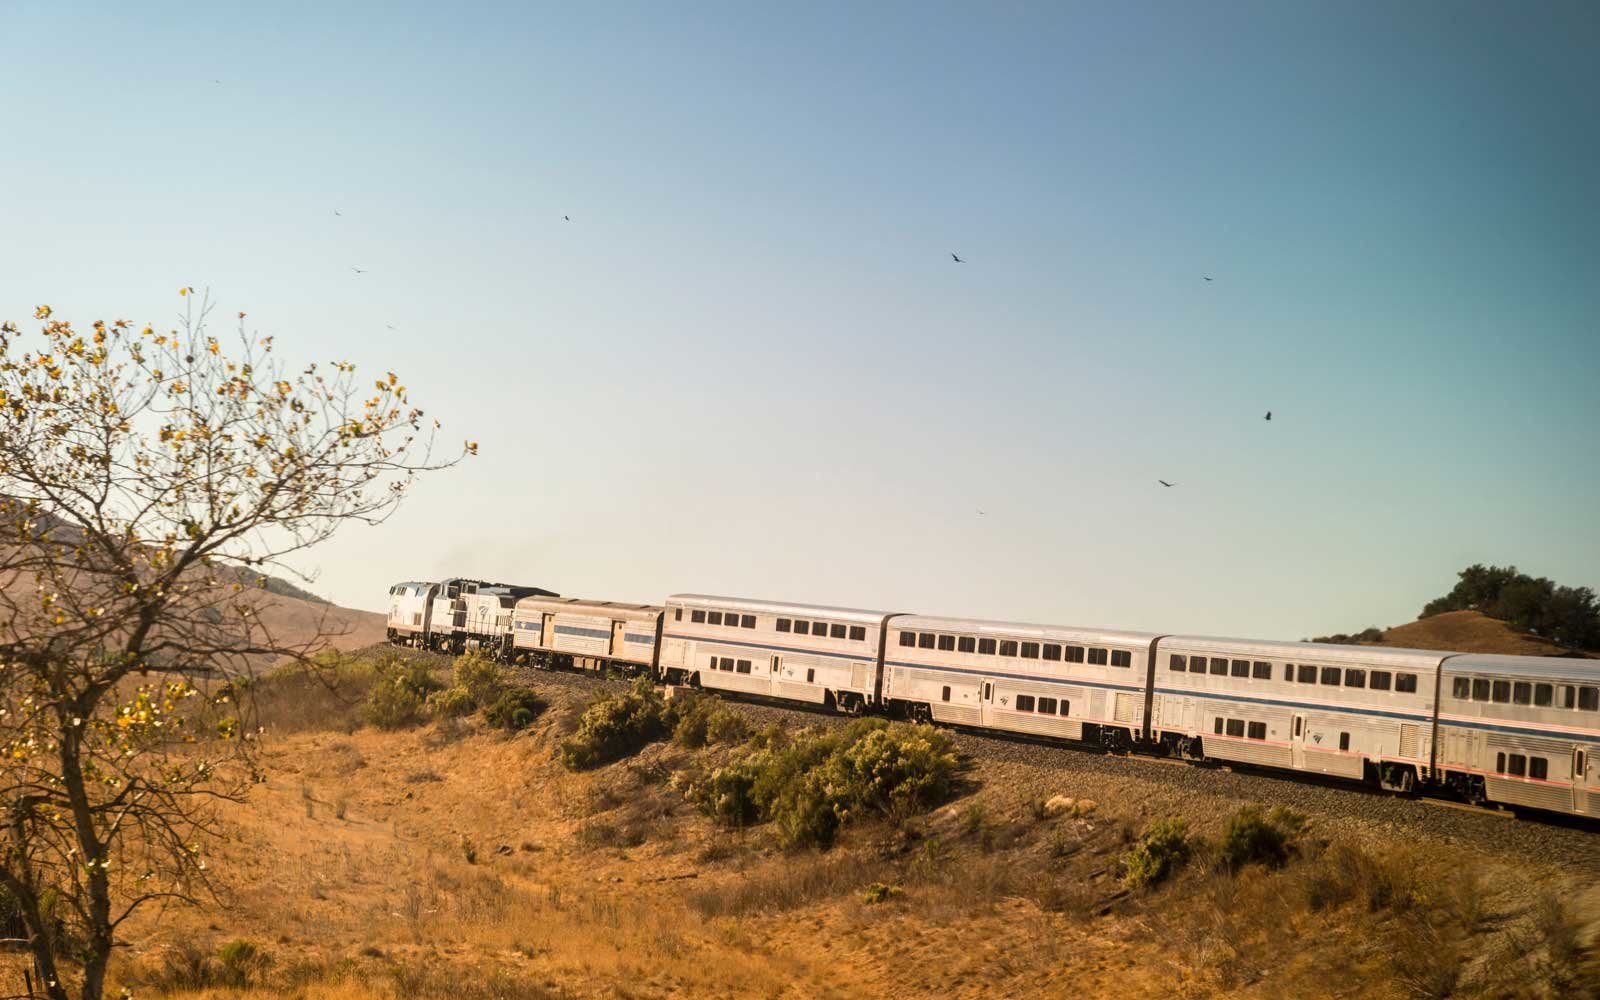 Amtrak Coast Starlight train